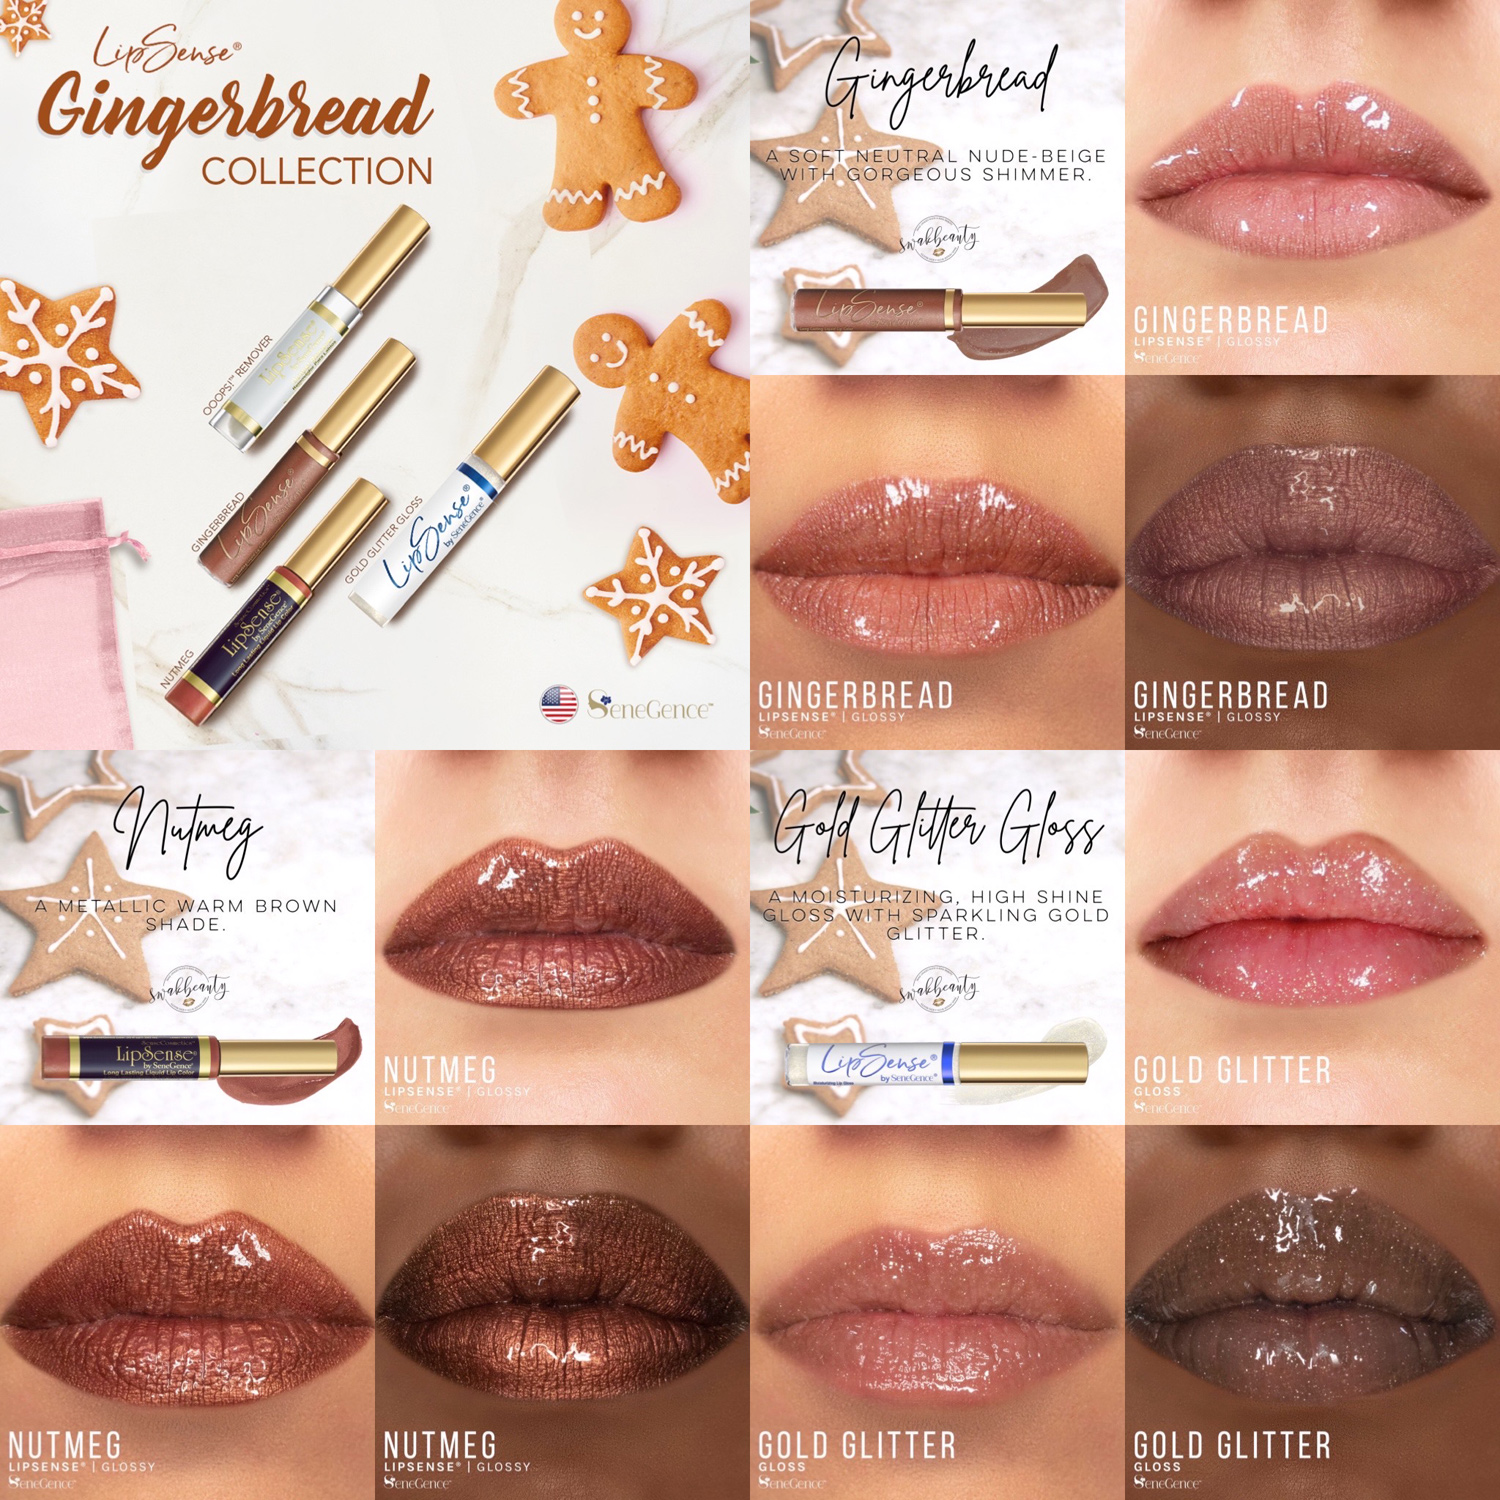 Gingerbread Lipsense Collection Limited Edition Swakbeauty Com